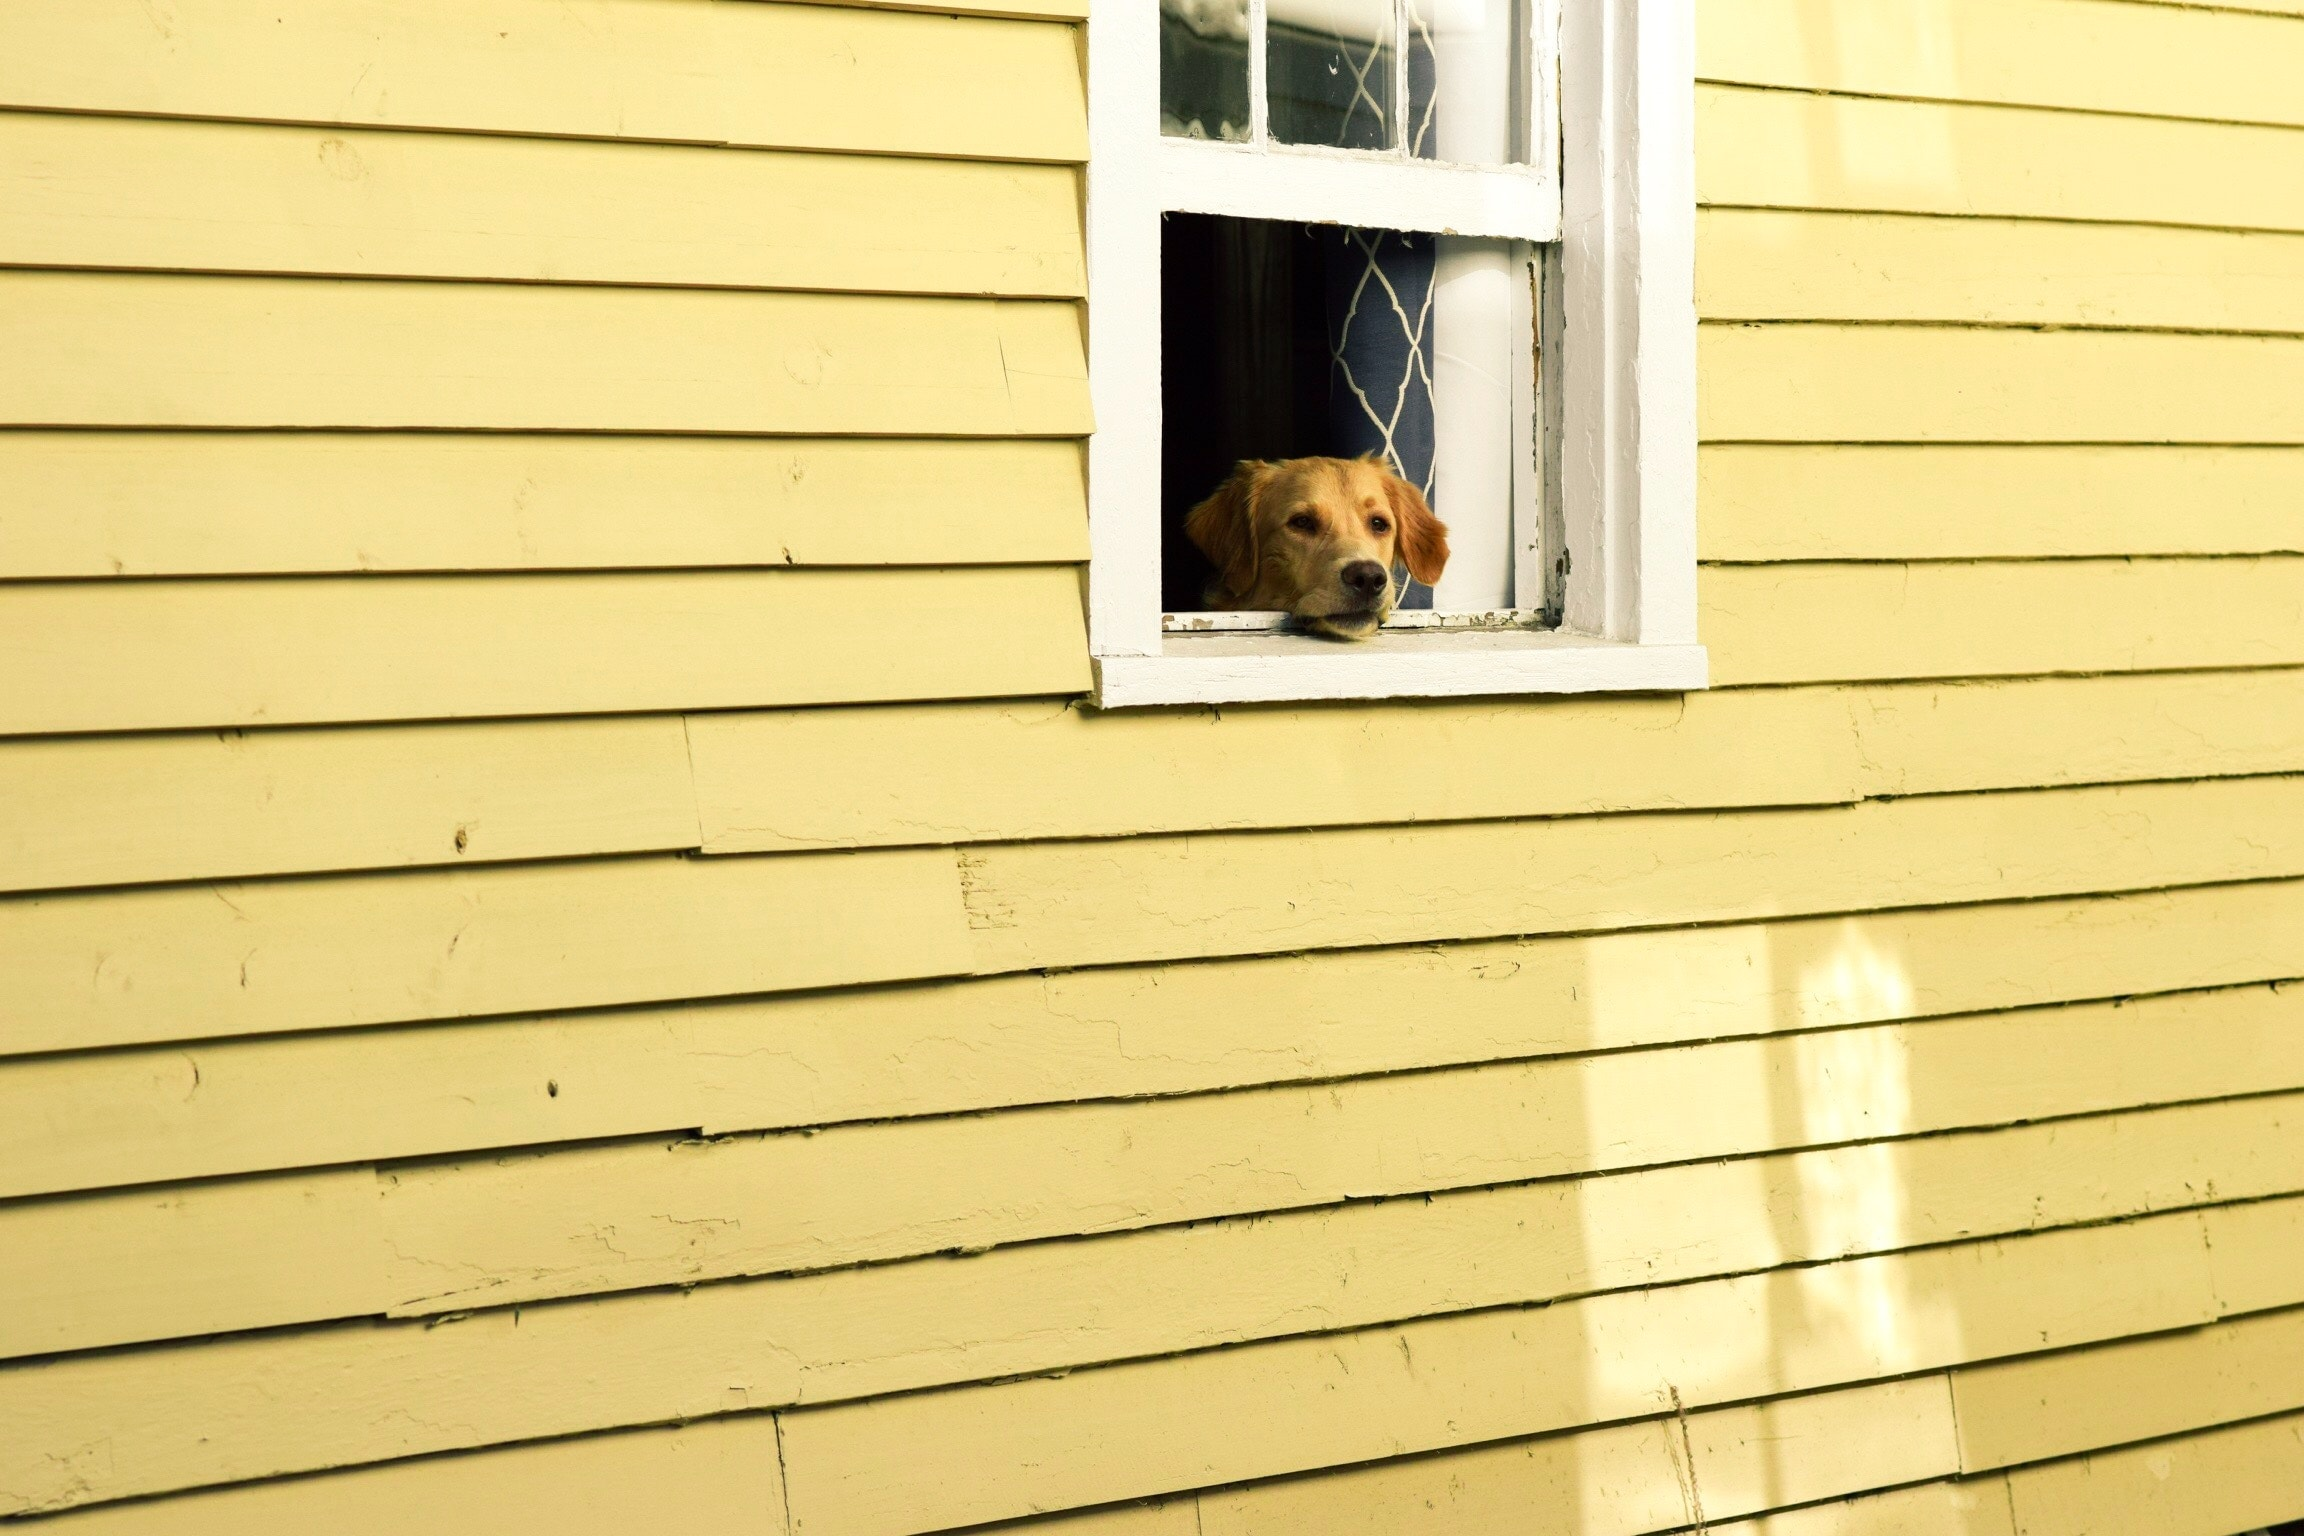 Pets may miss their old home. Give them time to adjust to their new environment